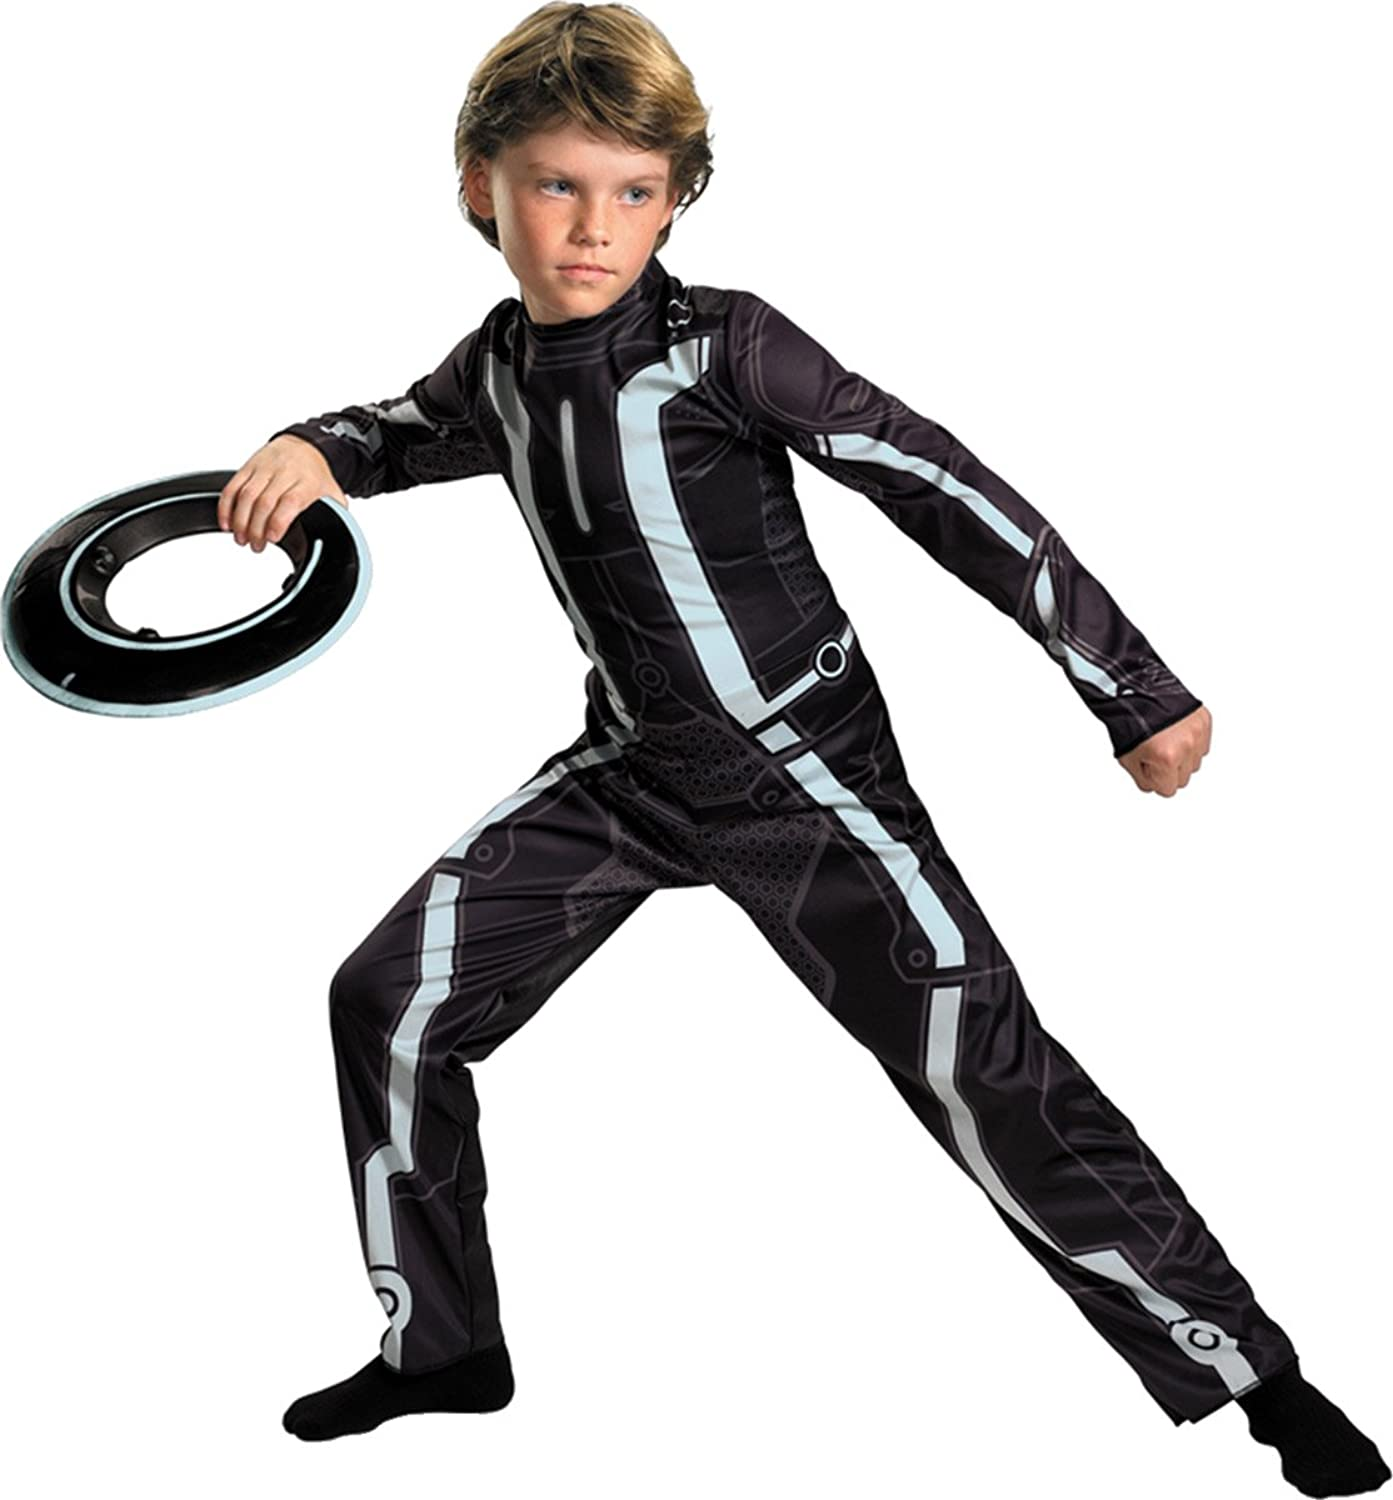 Morris Costumes TRON LEGACY CLASSIC 10-12 boys costumes scholar costumes chivalrous person costumes novelty costumes ancient chinese wear